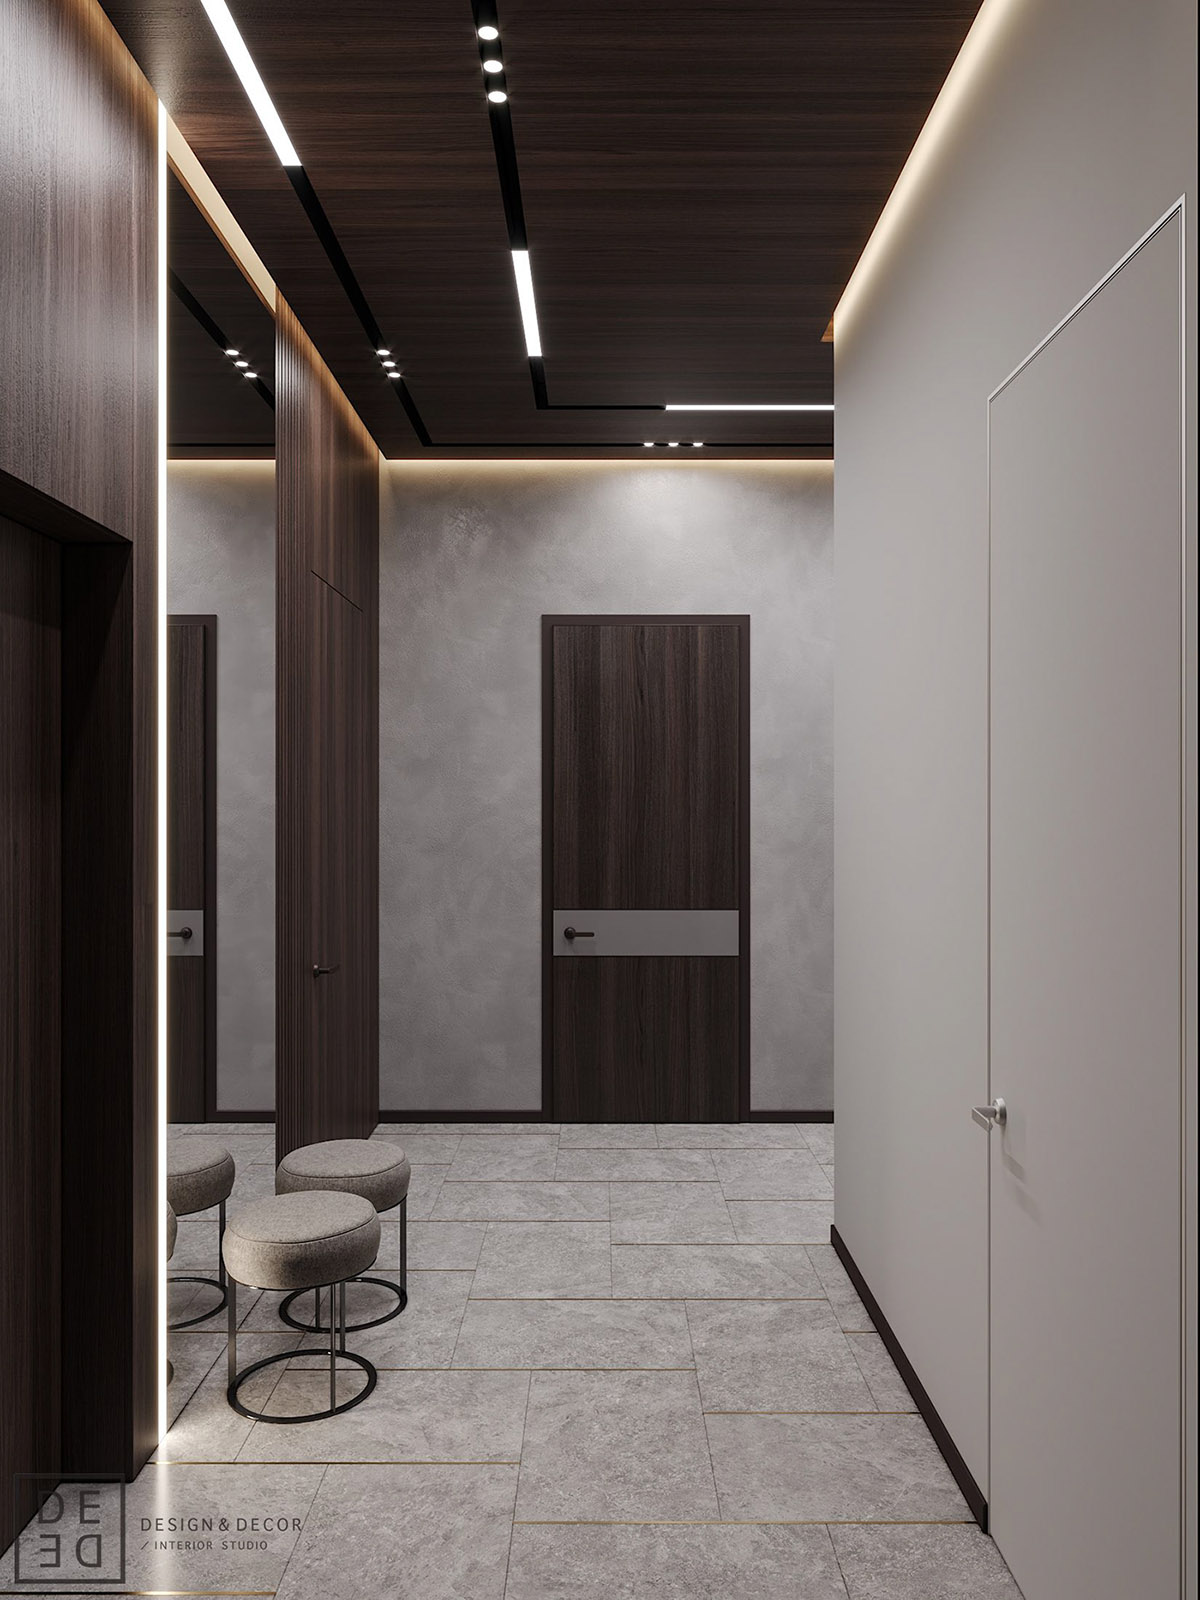 Luxurious Interior With Wood Slat Walls images 29